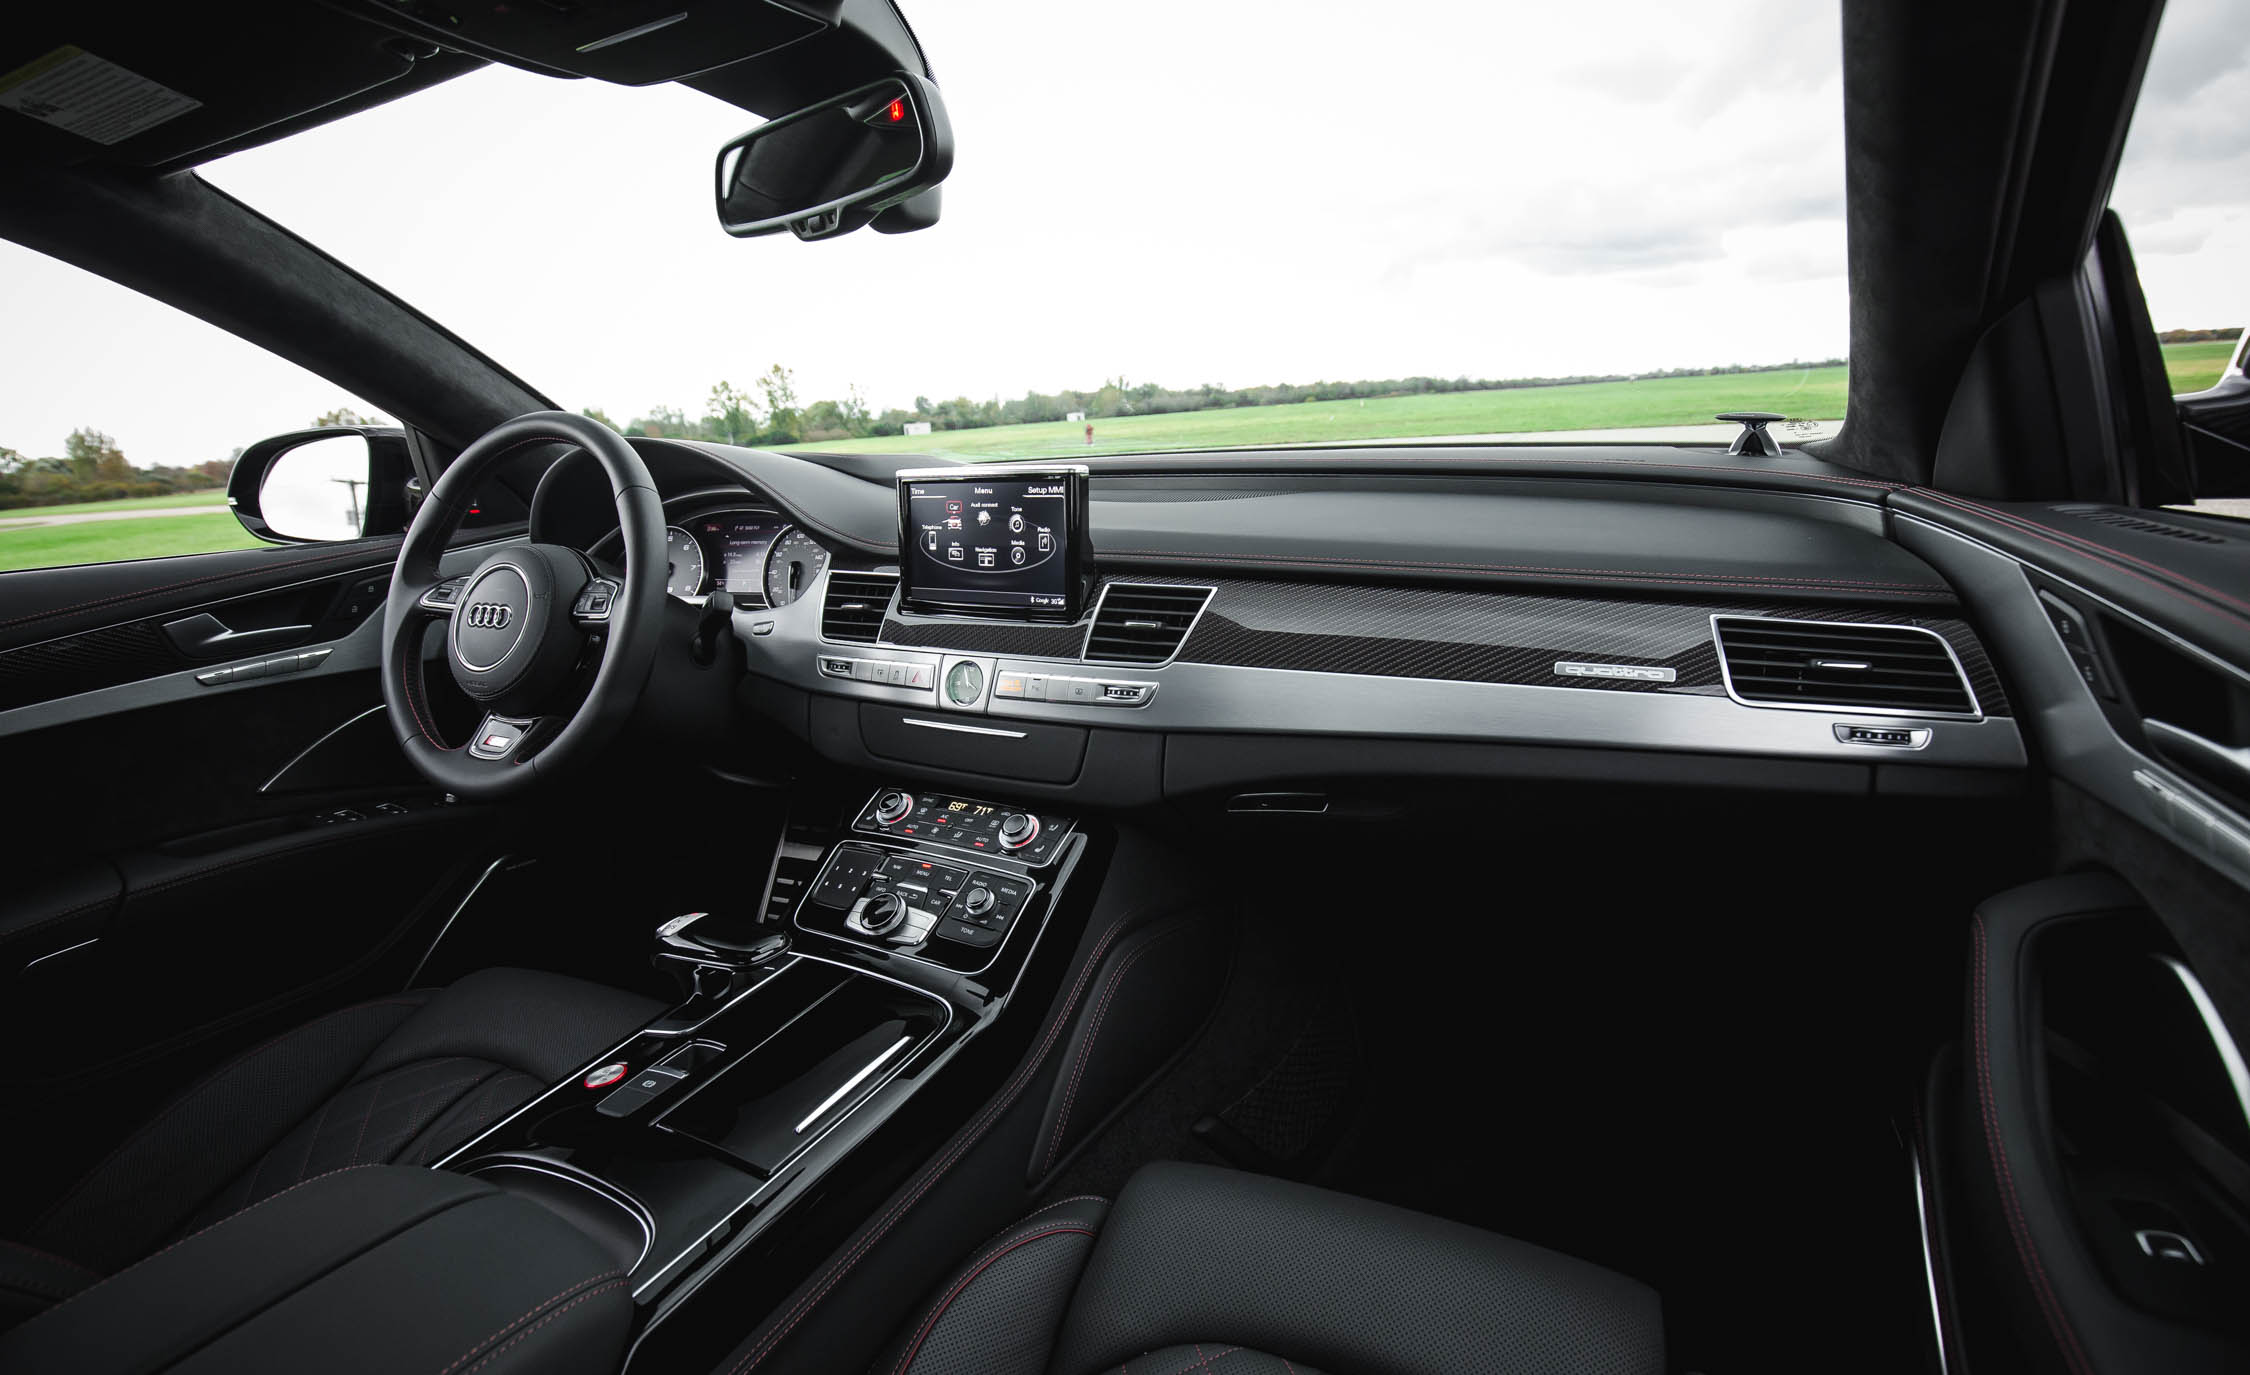 2017 Audi S8 Plus Interior Dash (Photo 15 of 36)